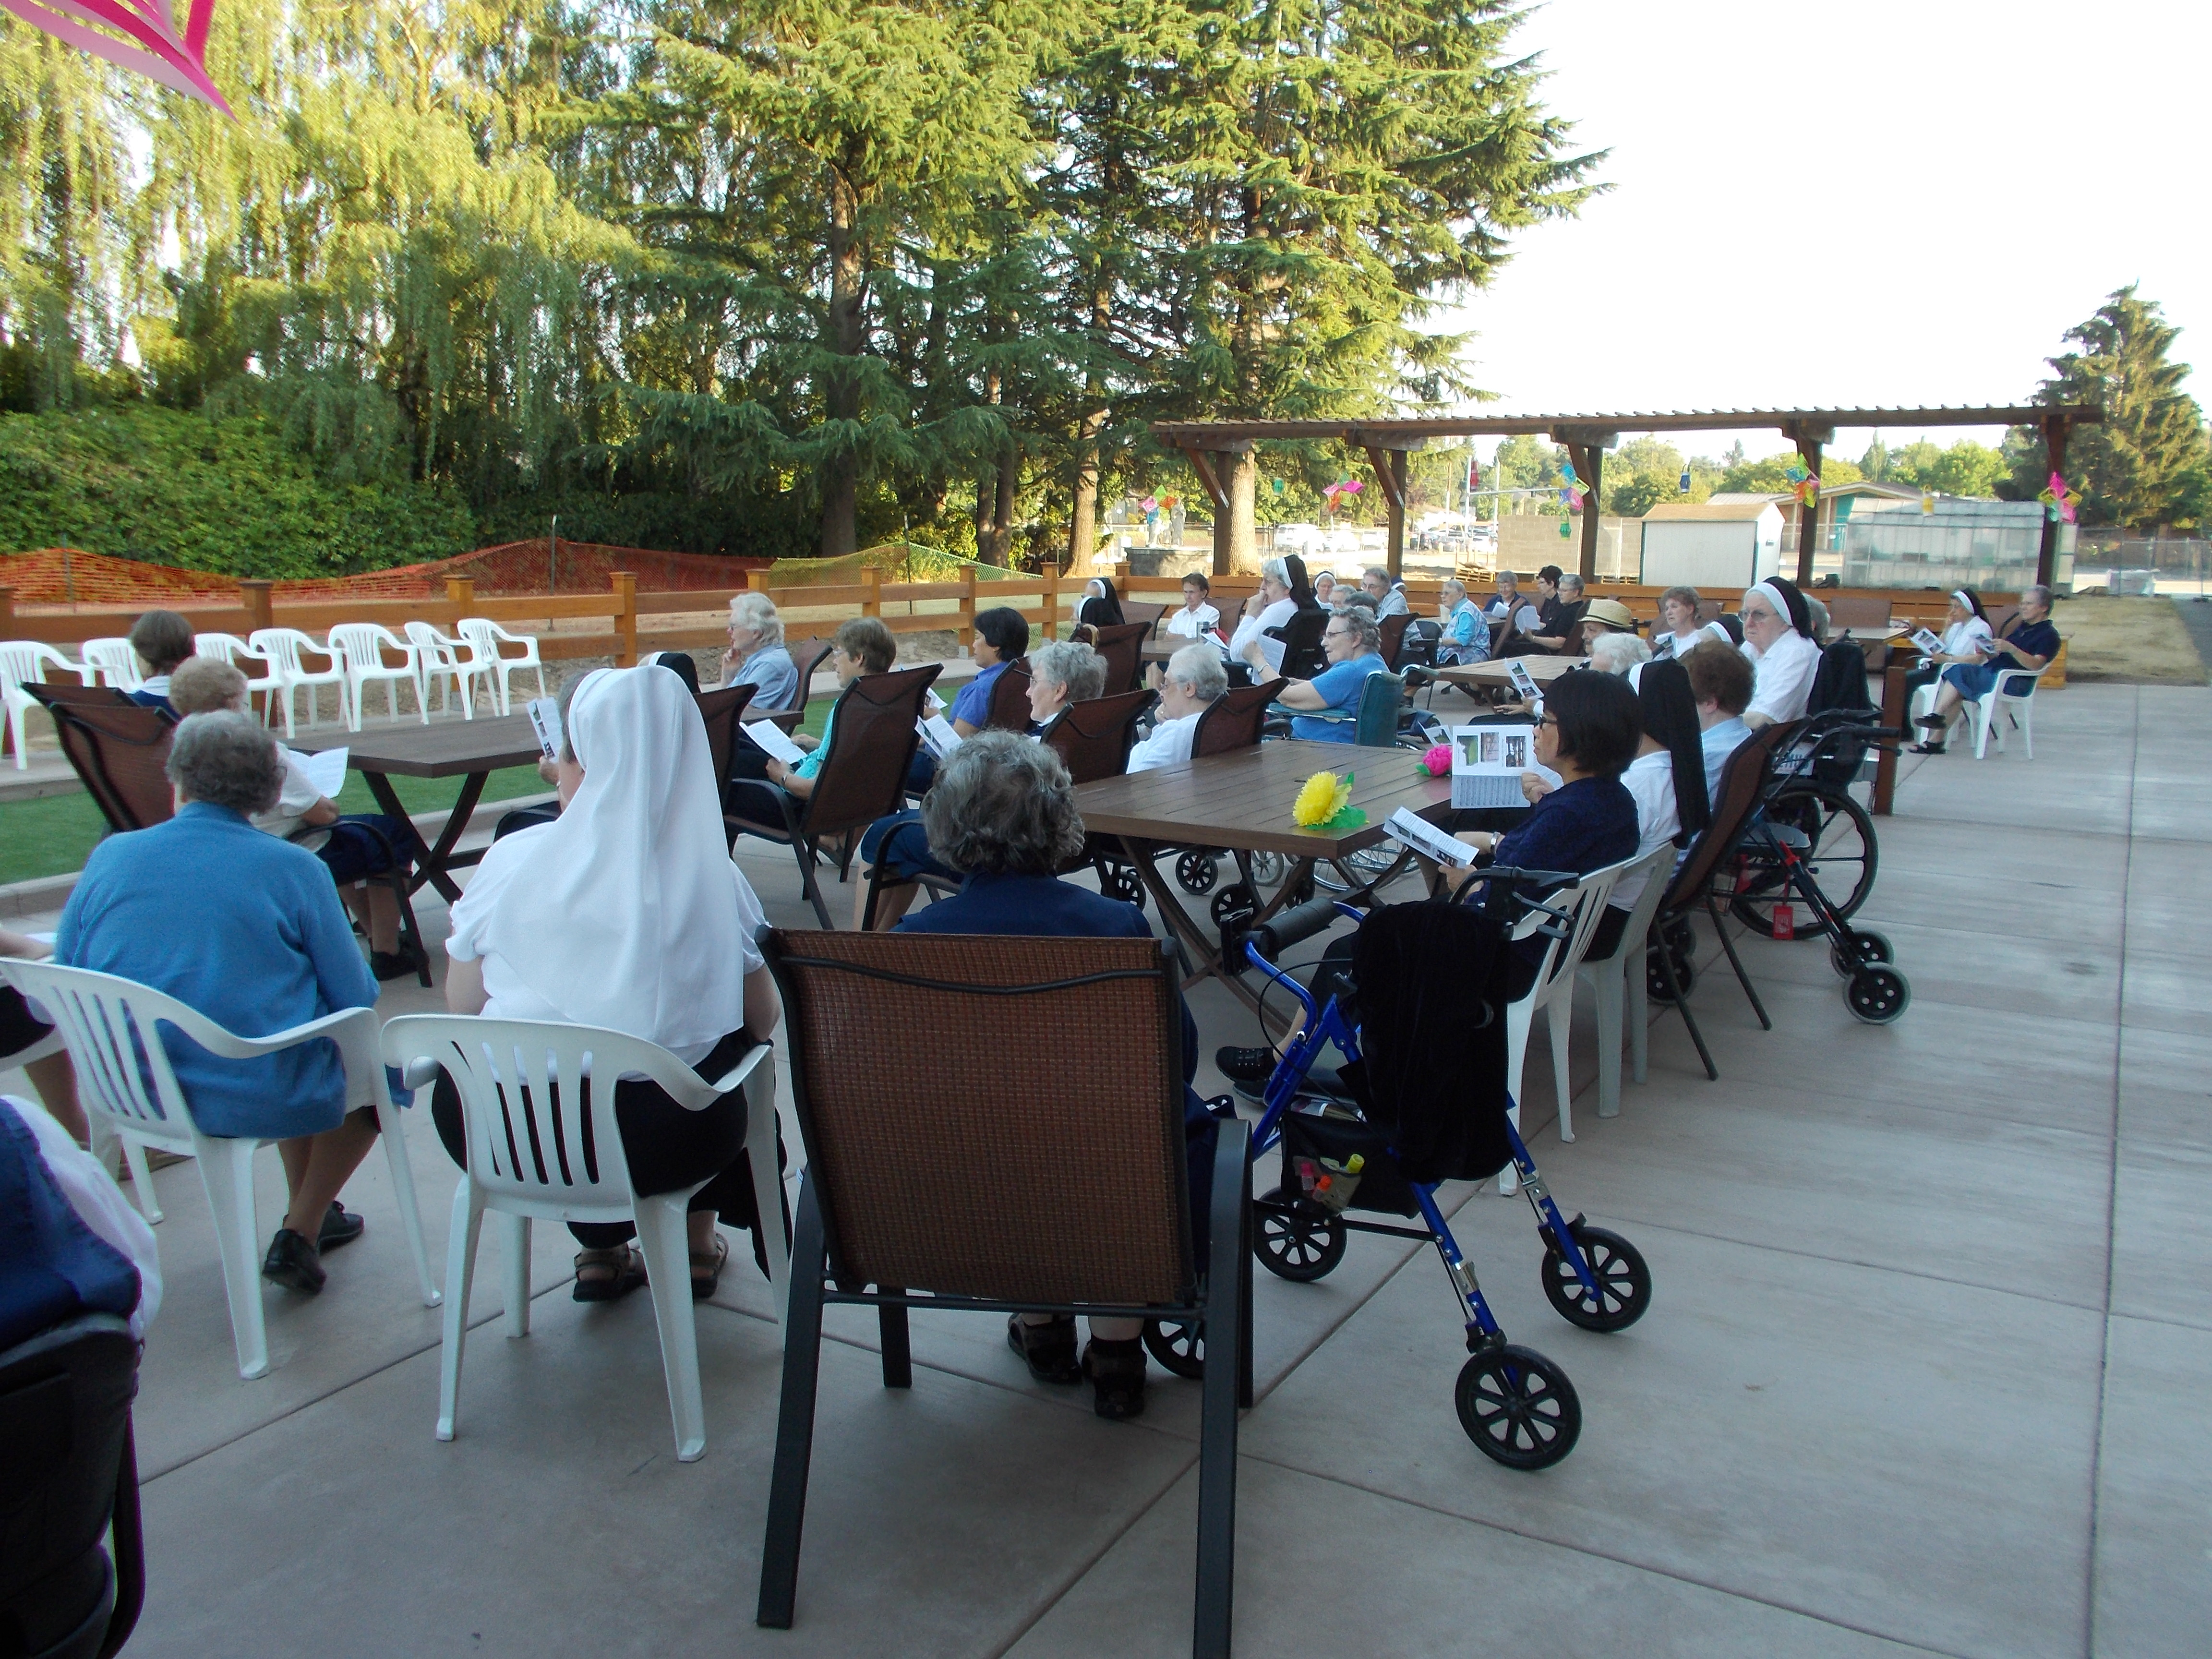 Sisters enjoy the chairs, tables and environment as they engage in the dedication service for the dedication of the new patio and bocce court.